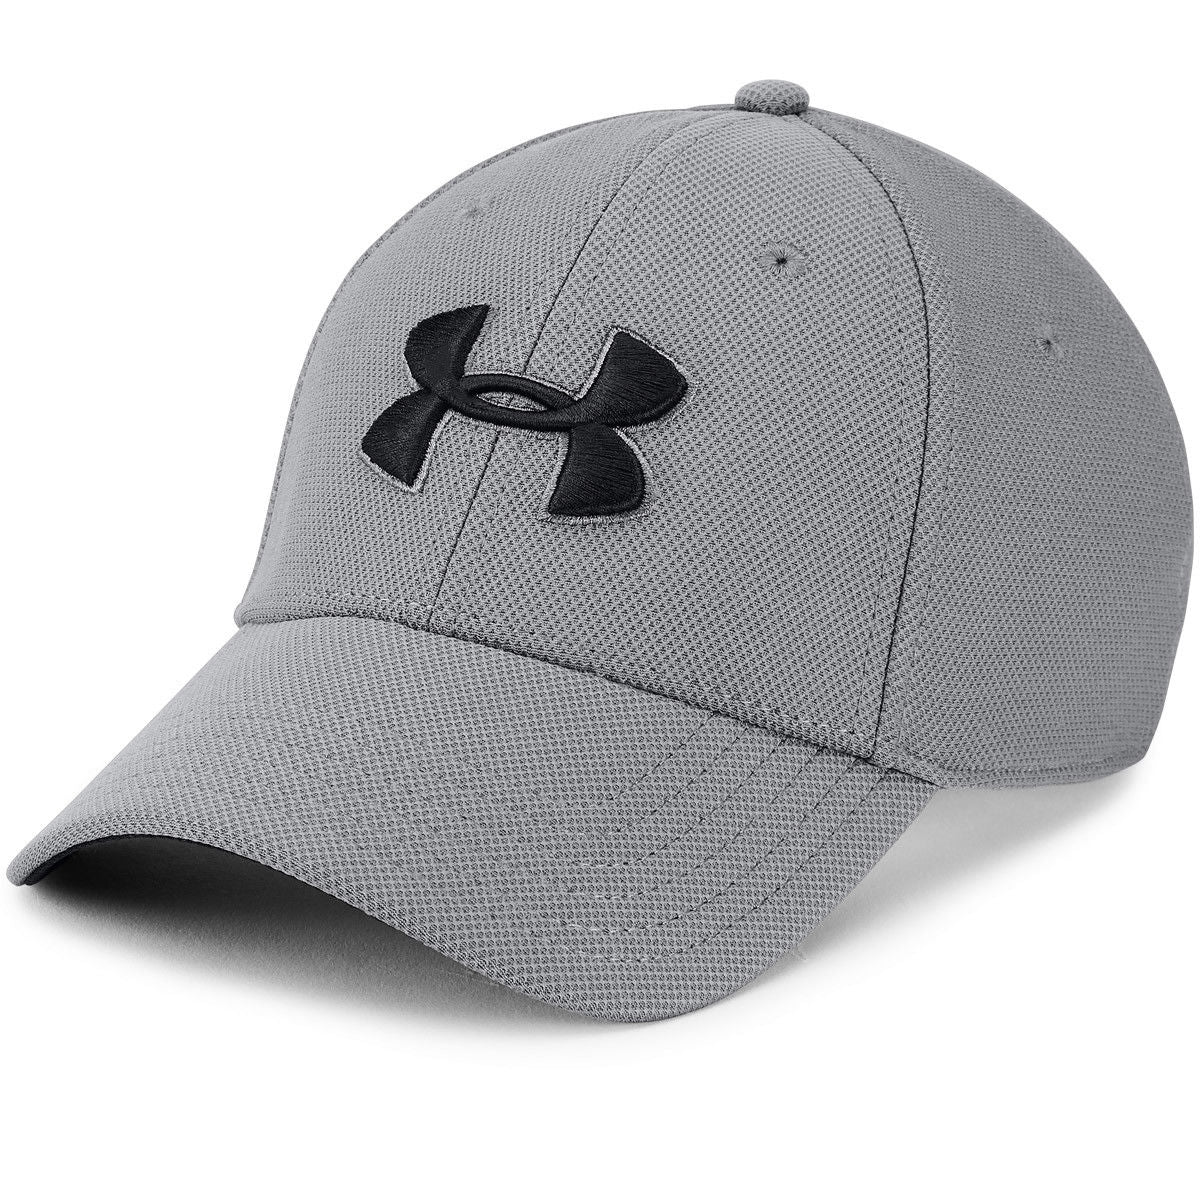 37ad310843 Under Armour Mens Blitzing 3.0 Golf Stretch Fit Curved Peak Hat Cap ...